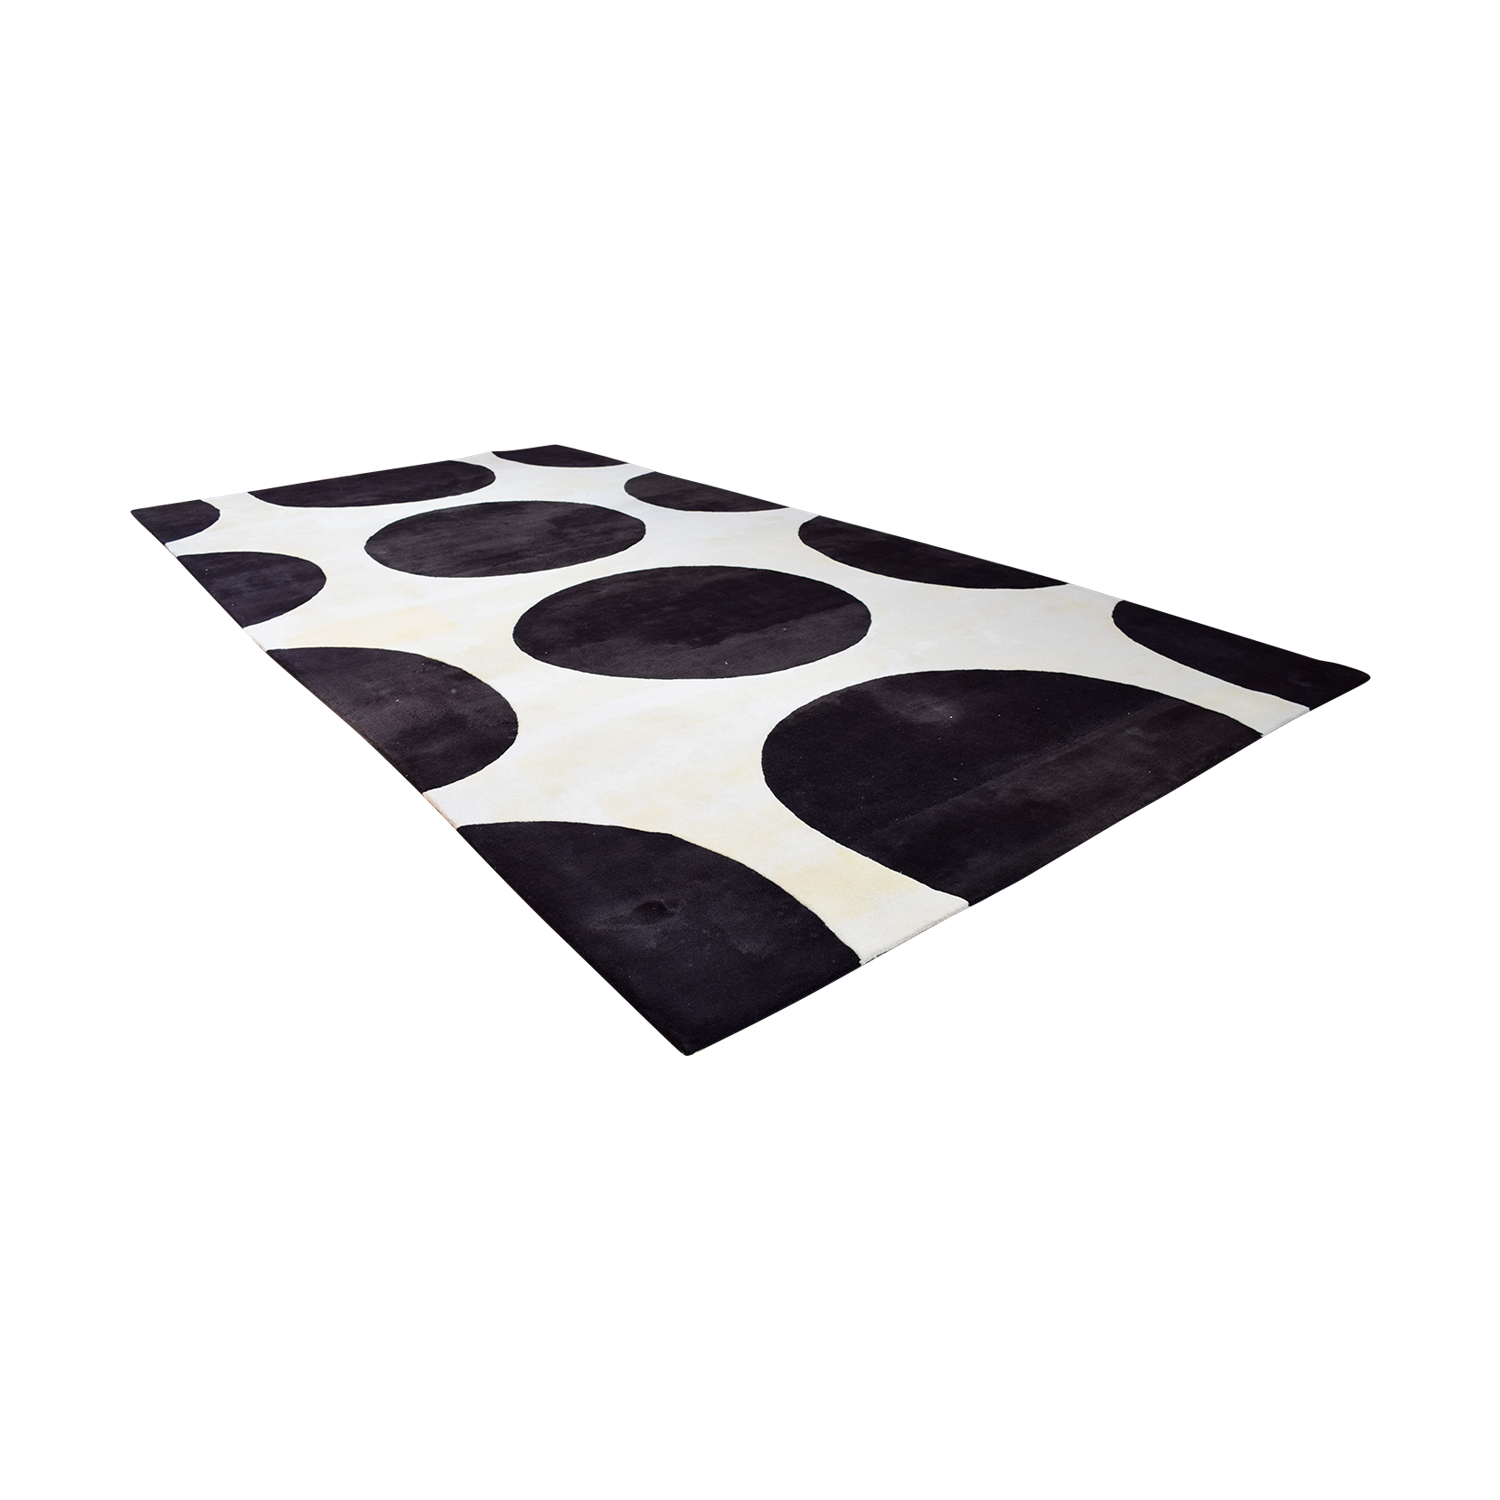 shop Gandia Blasco Gandia Blasco Brown and Cream Polkadot Rug online